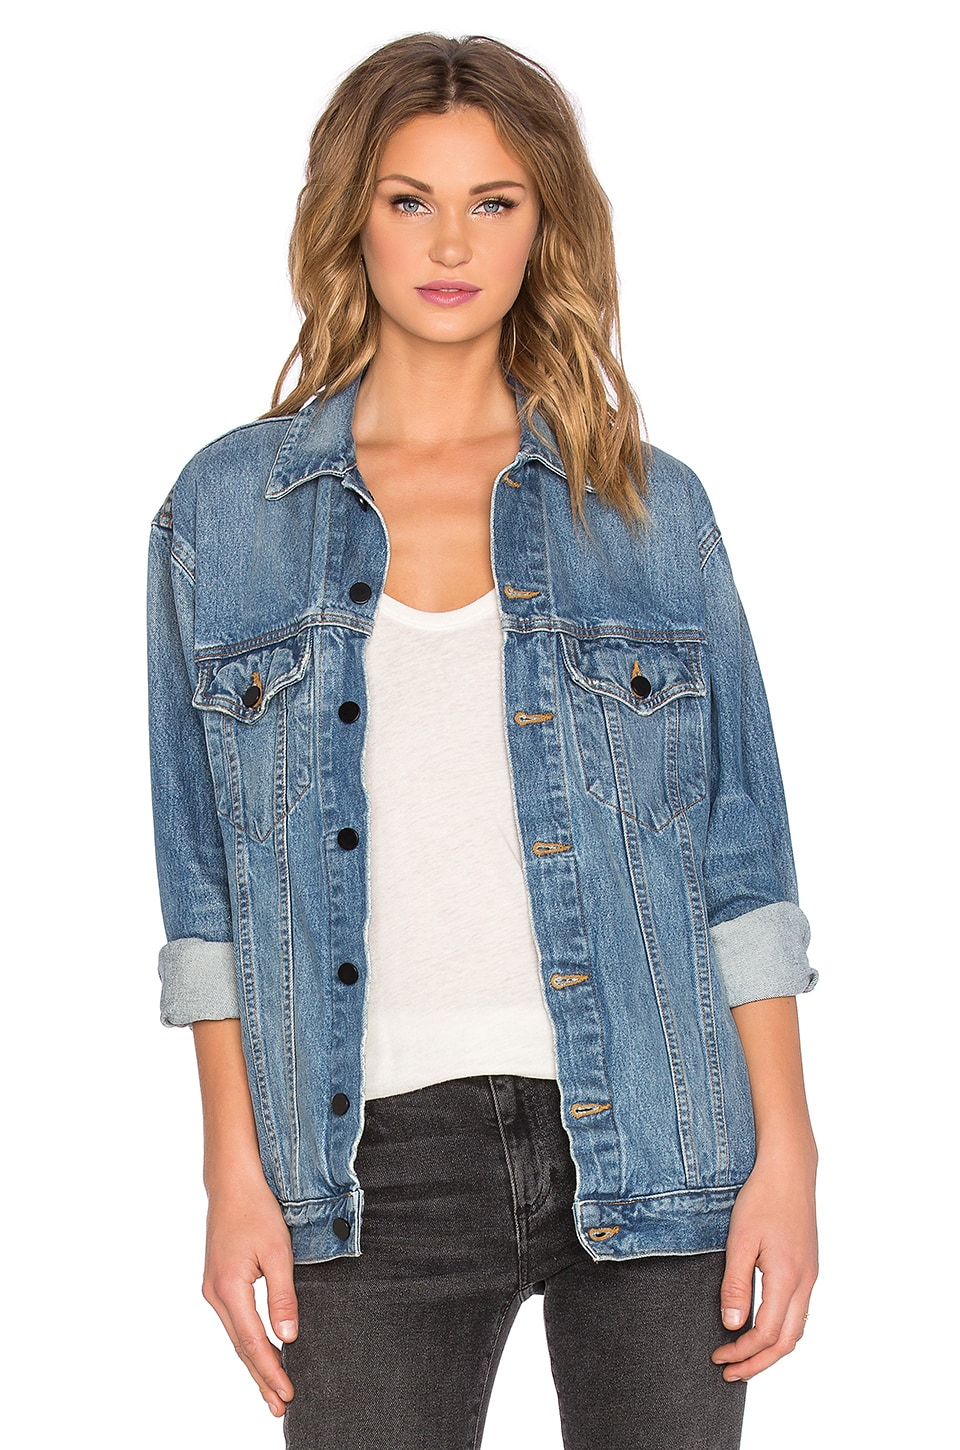 DENIM x ALEXANDER WANG Daze Oversized Jean Jacket in Light Indigo Aged